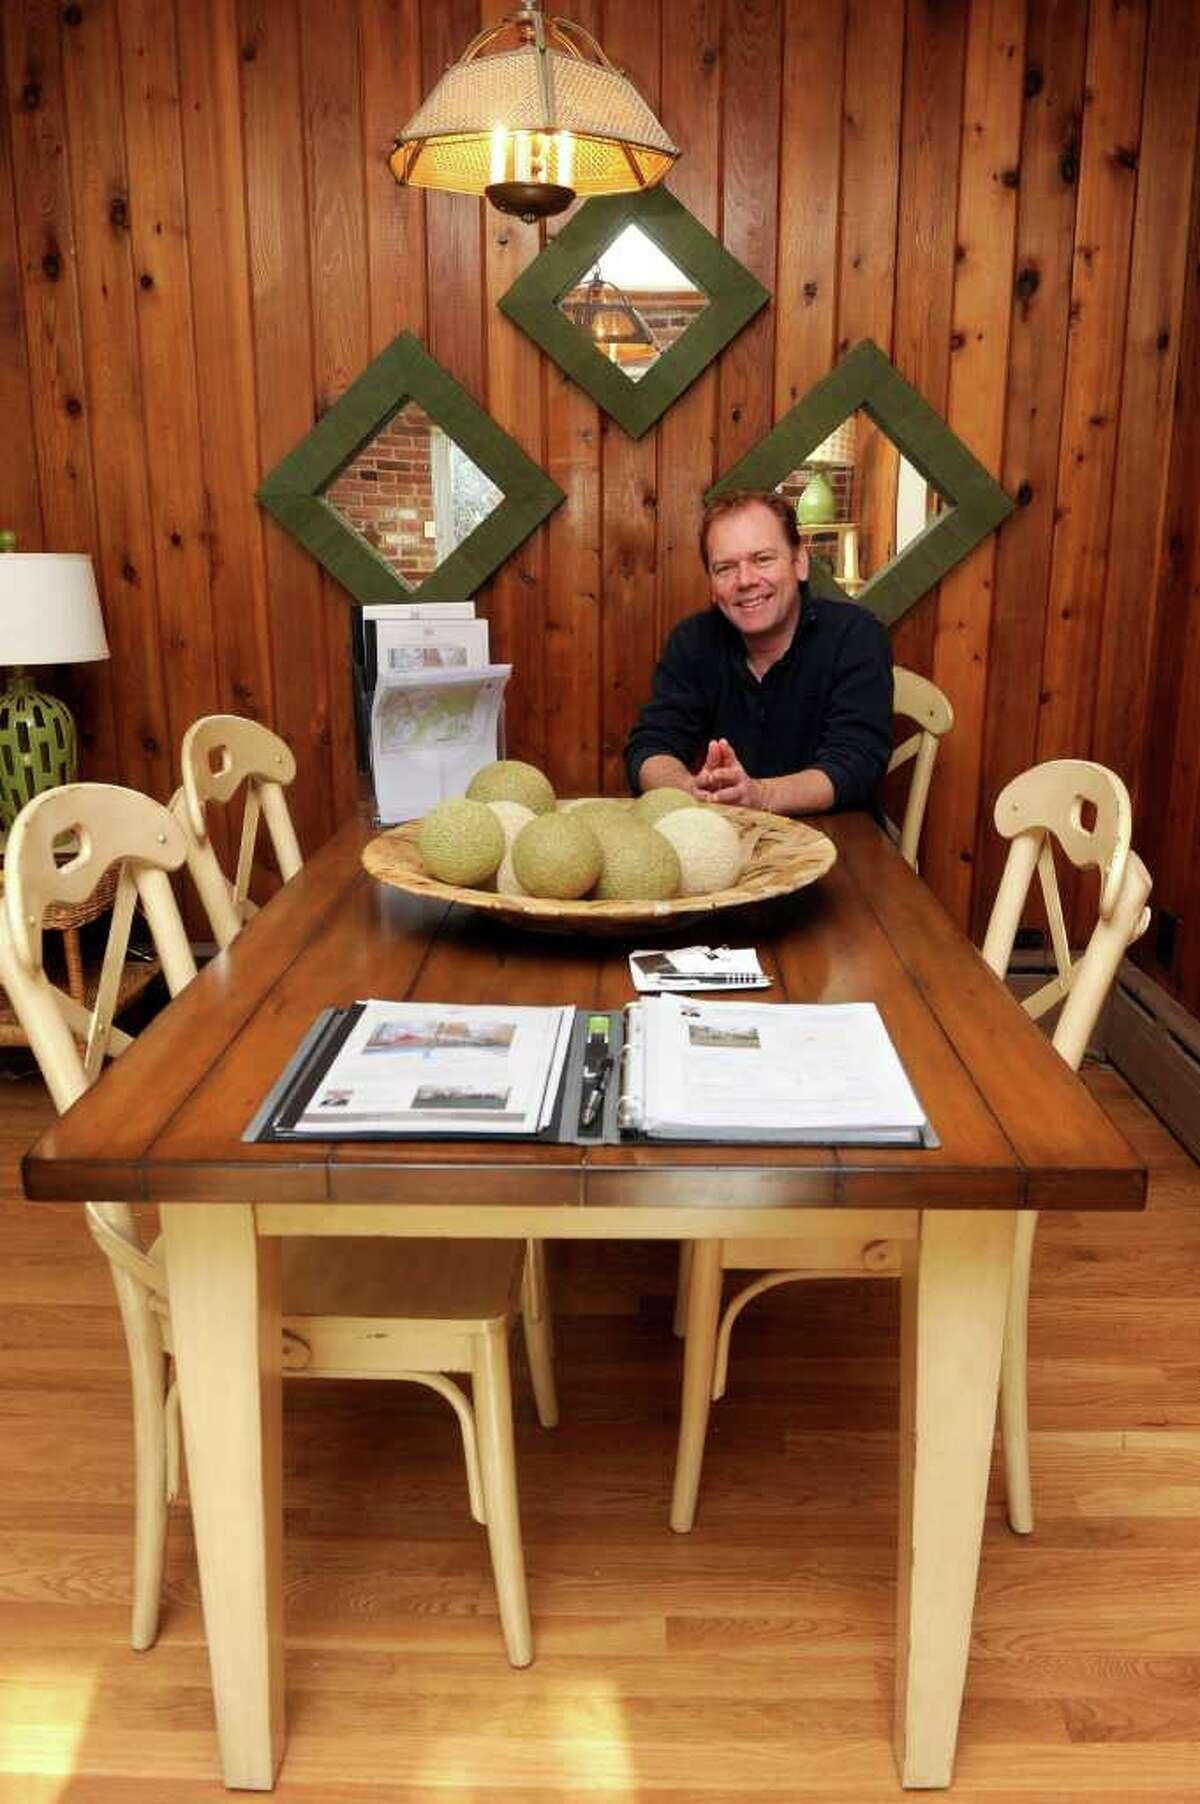 George Knapp, property manager at 4 Lehn Farm Rd in Westport, poses for a photo in the house, which is for sale. On the table is sale paperwork and information for potential buyers.